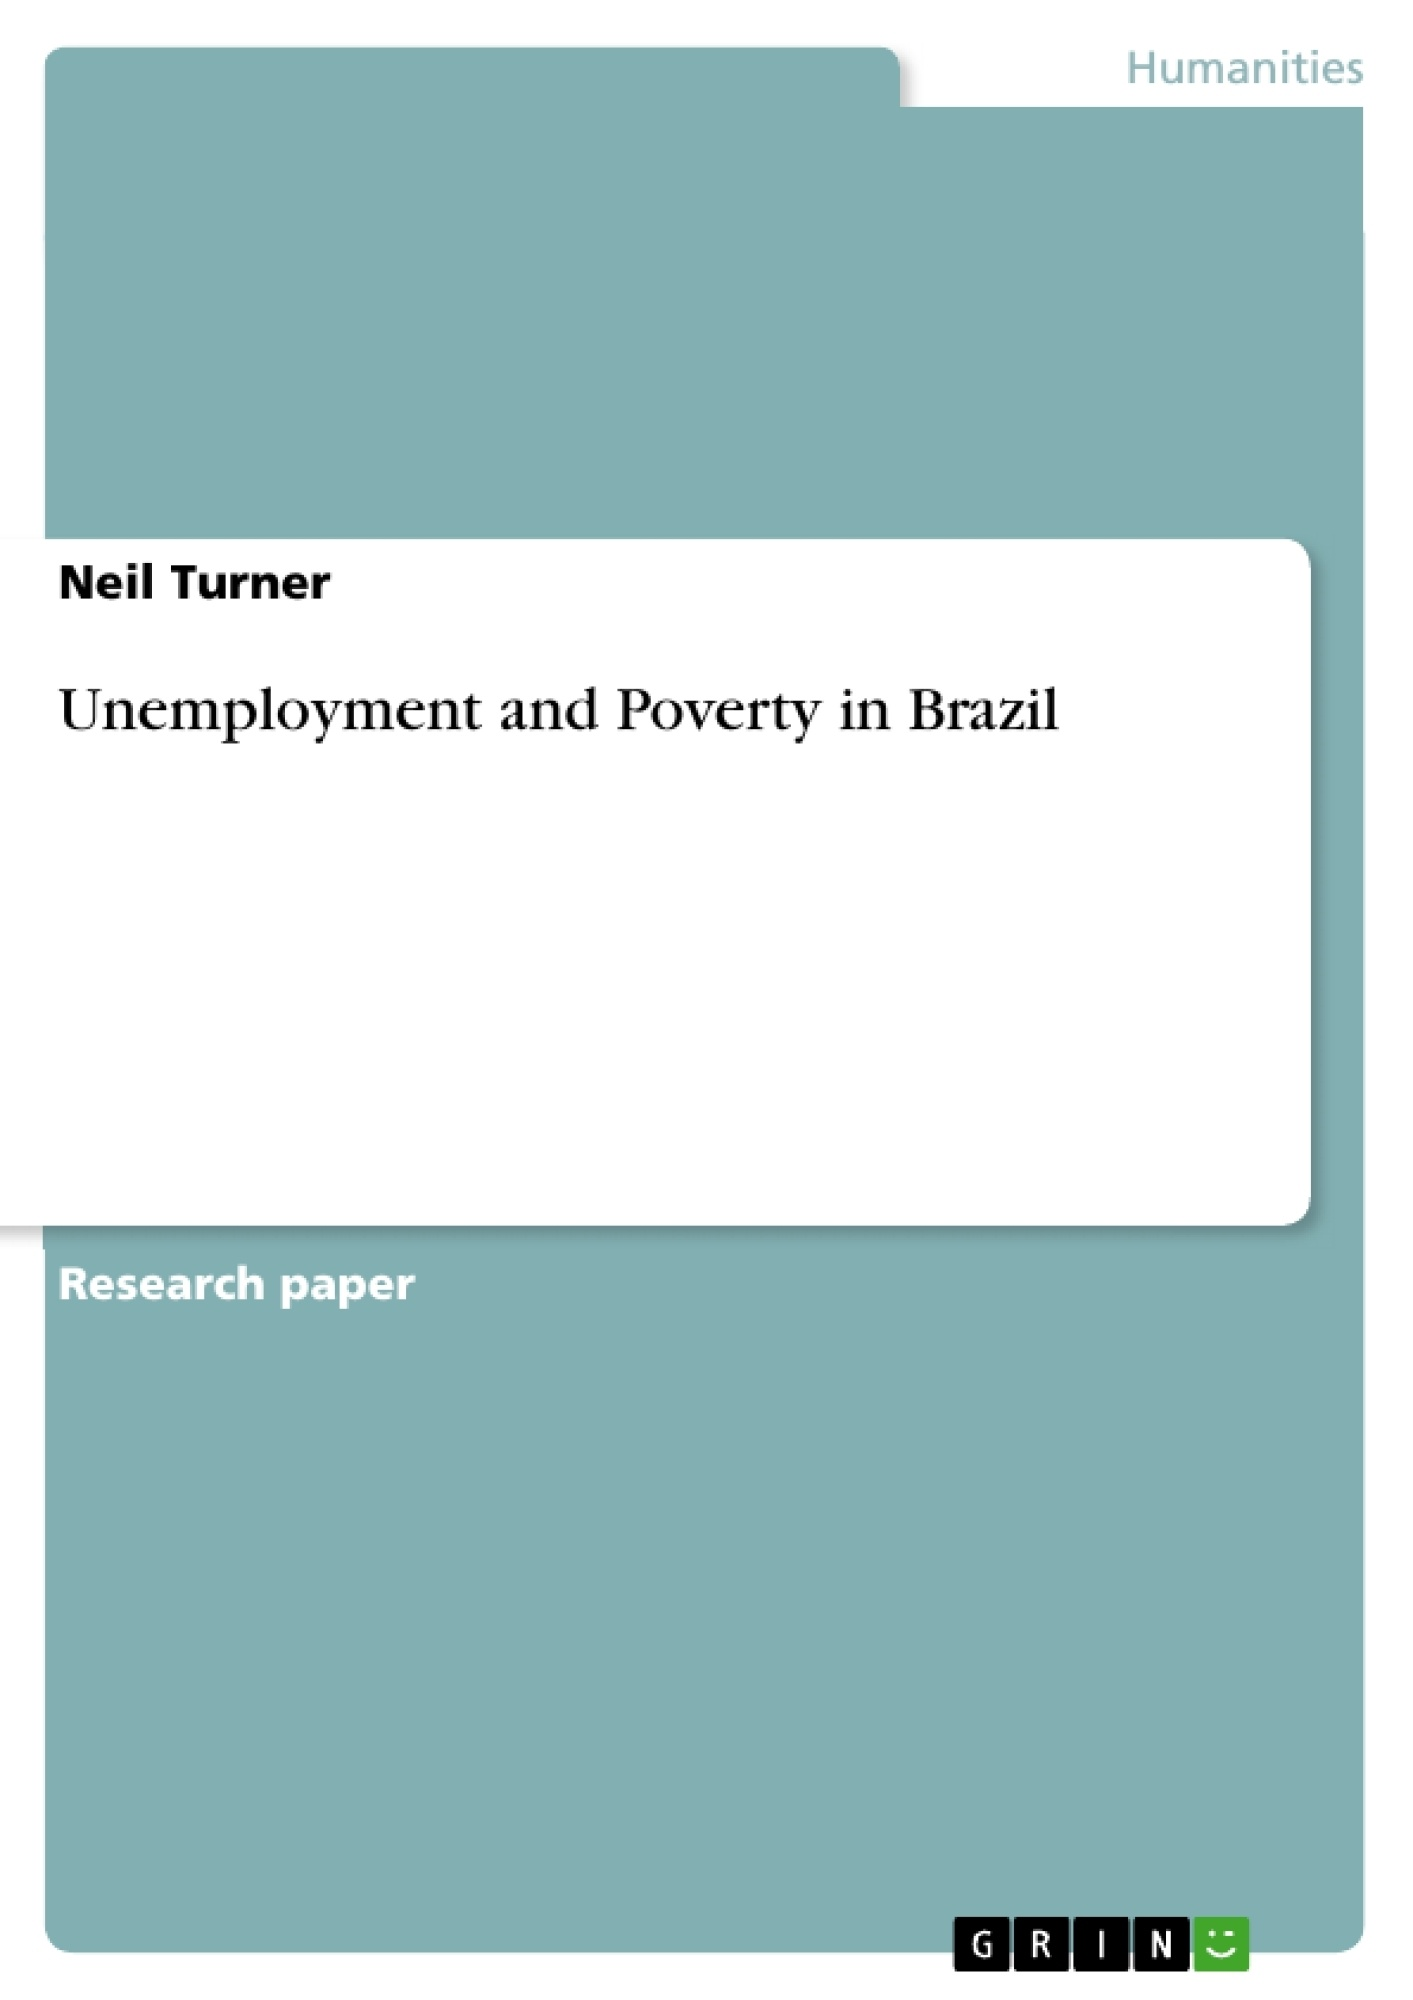 unemployment and poverty in publish your master s thesis unemployment and poverty in publish your master s thesis bachelor s thesis essay or term paper